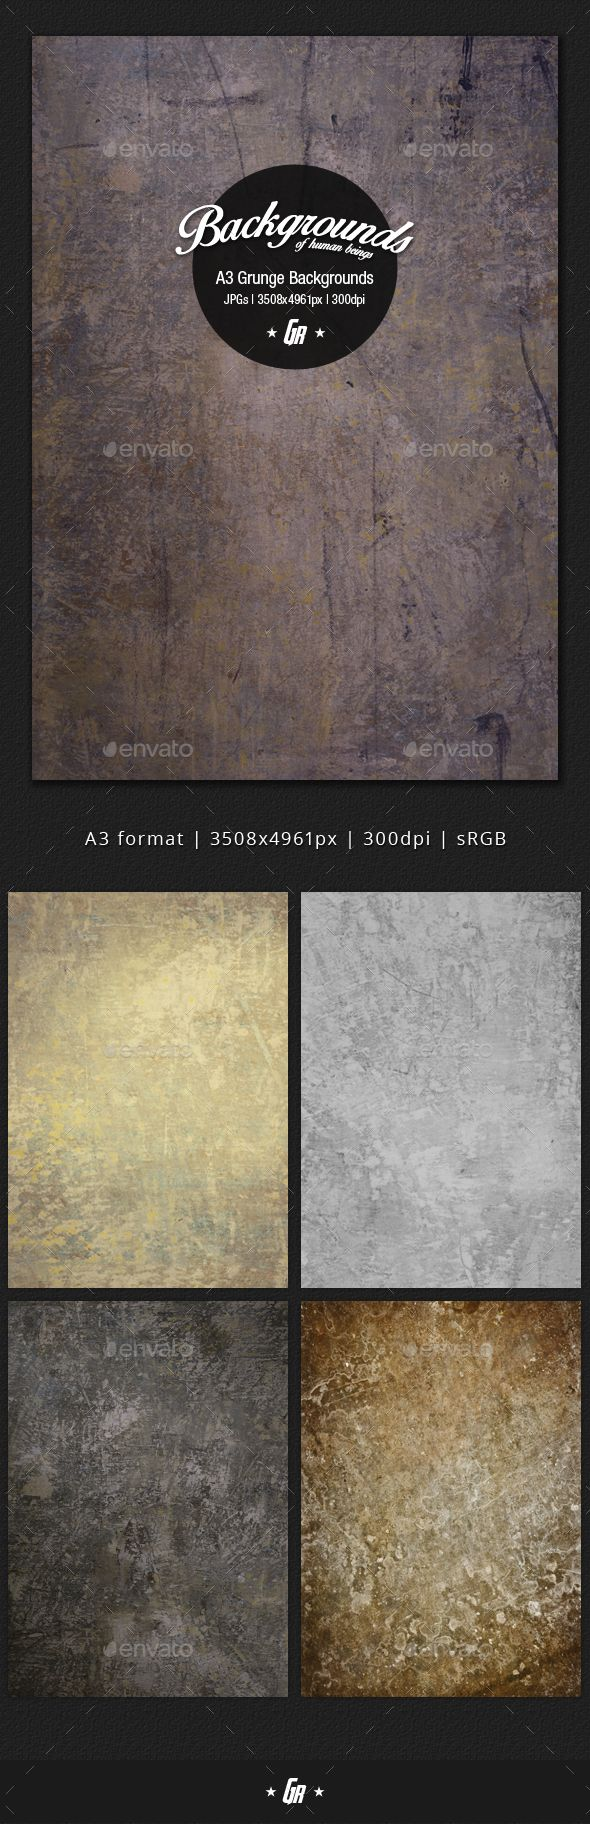 A3 size grunge wall textured backgroundsSet of 5 high